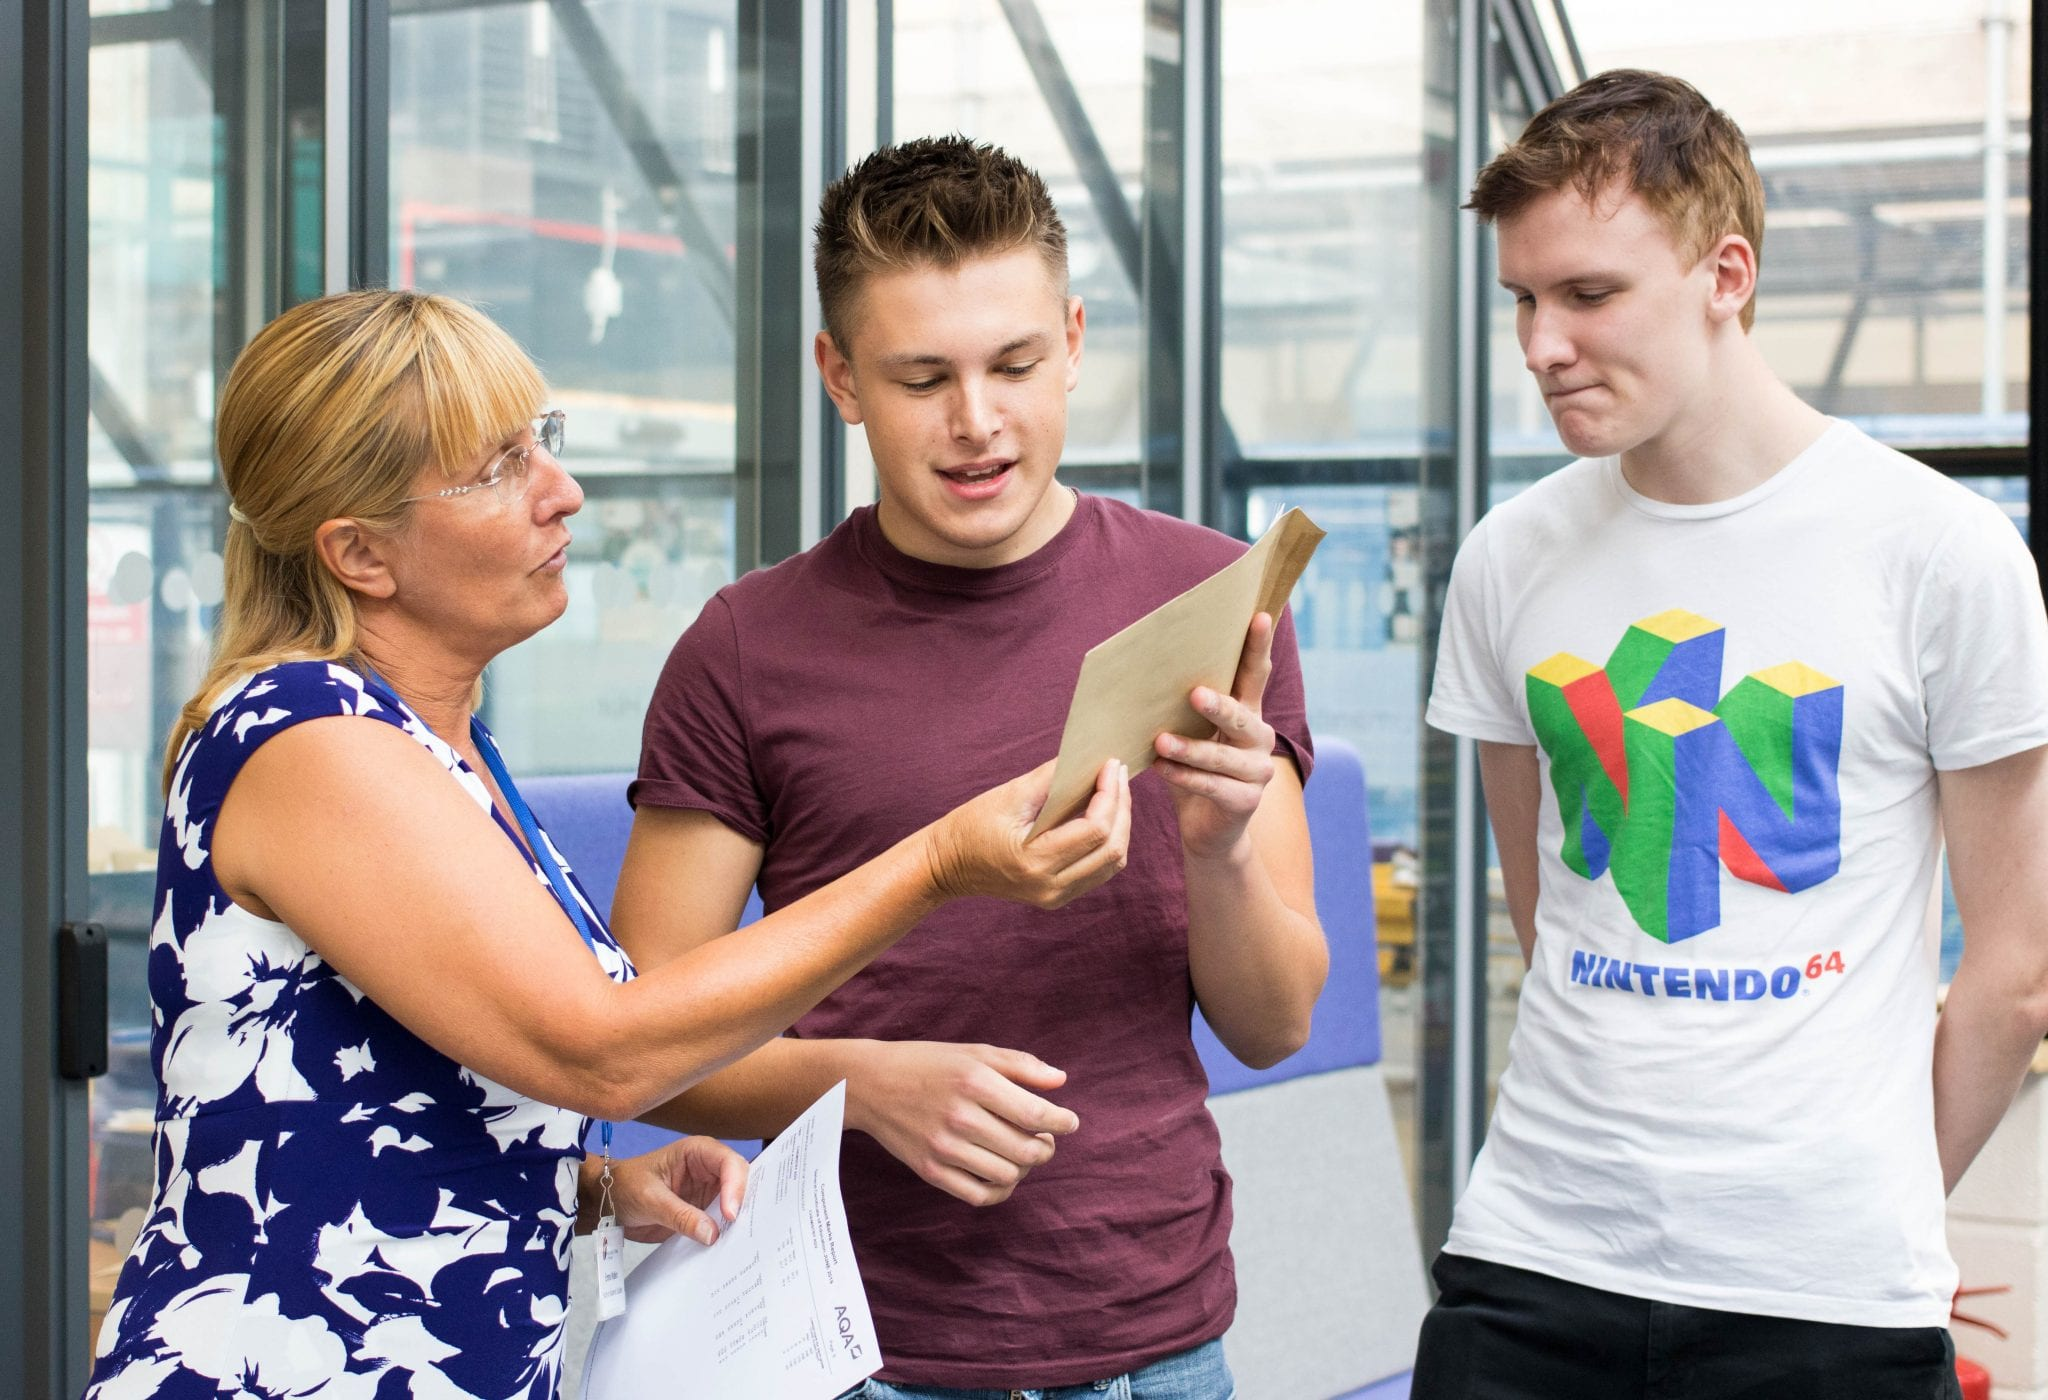 Lecturer chats with her students as they get their A level results